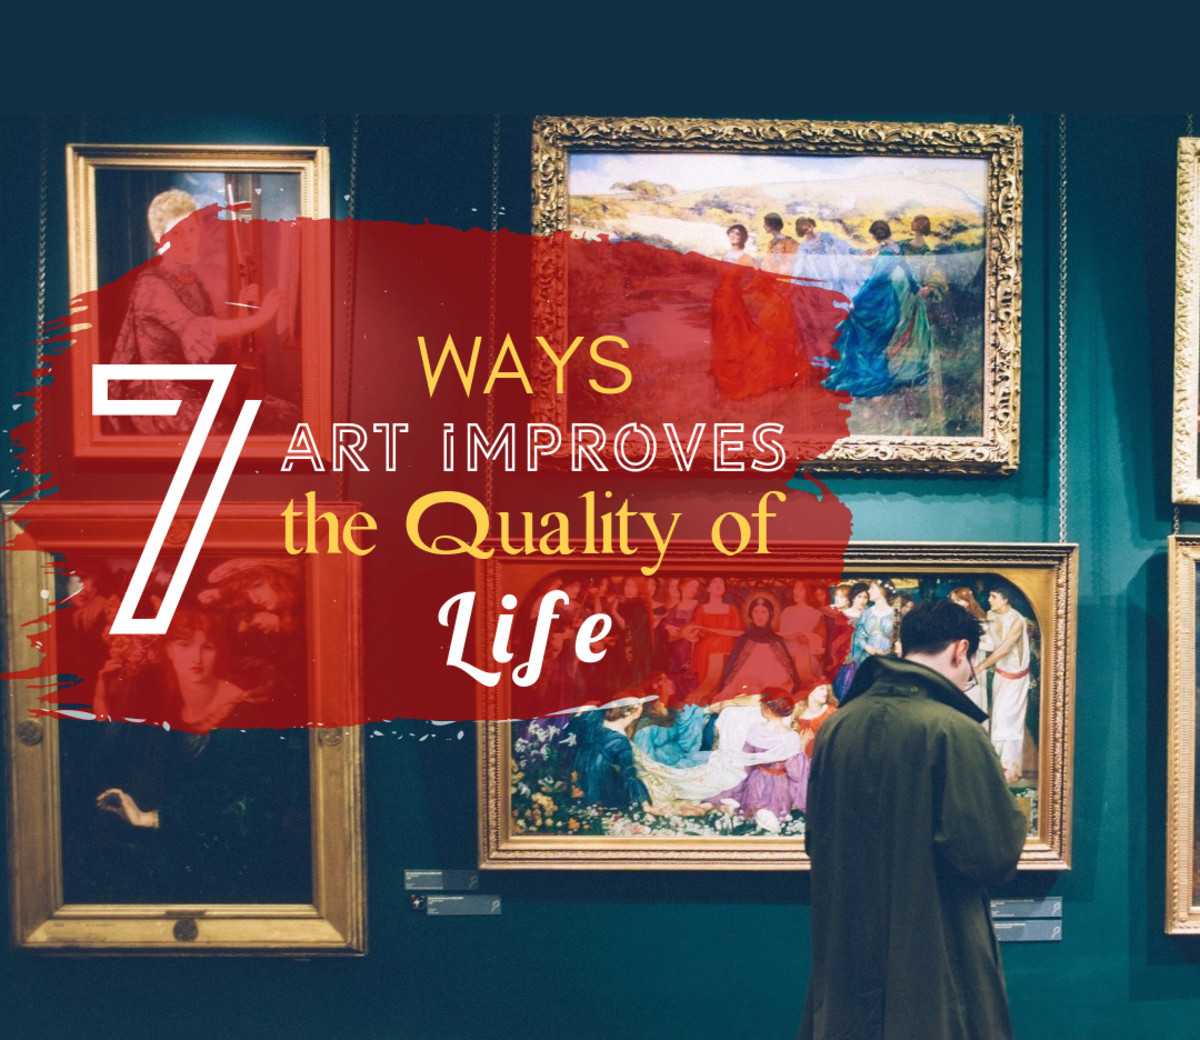 How does art appreciation improve quality of life and makes you feel good? There is science behind it. Admiring artworks stimulates the brain similarly to what happens when we fall in love, it improves our mood, and can be used as therapy during heal